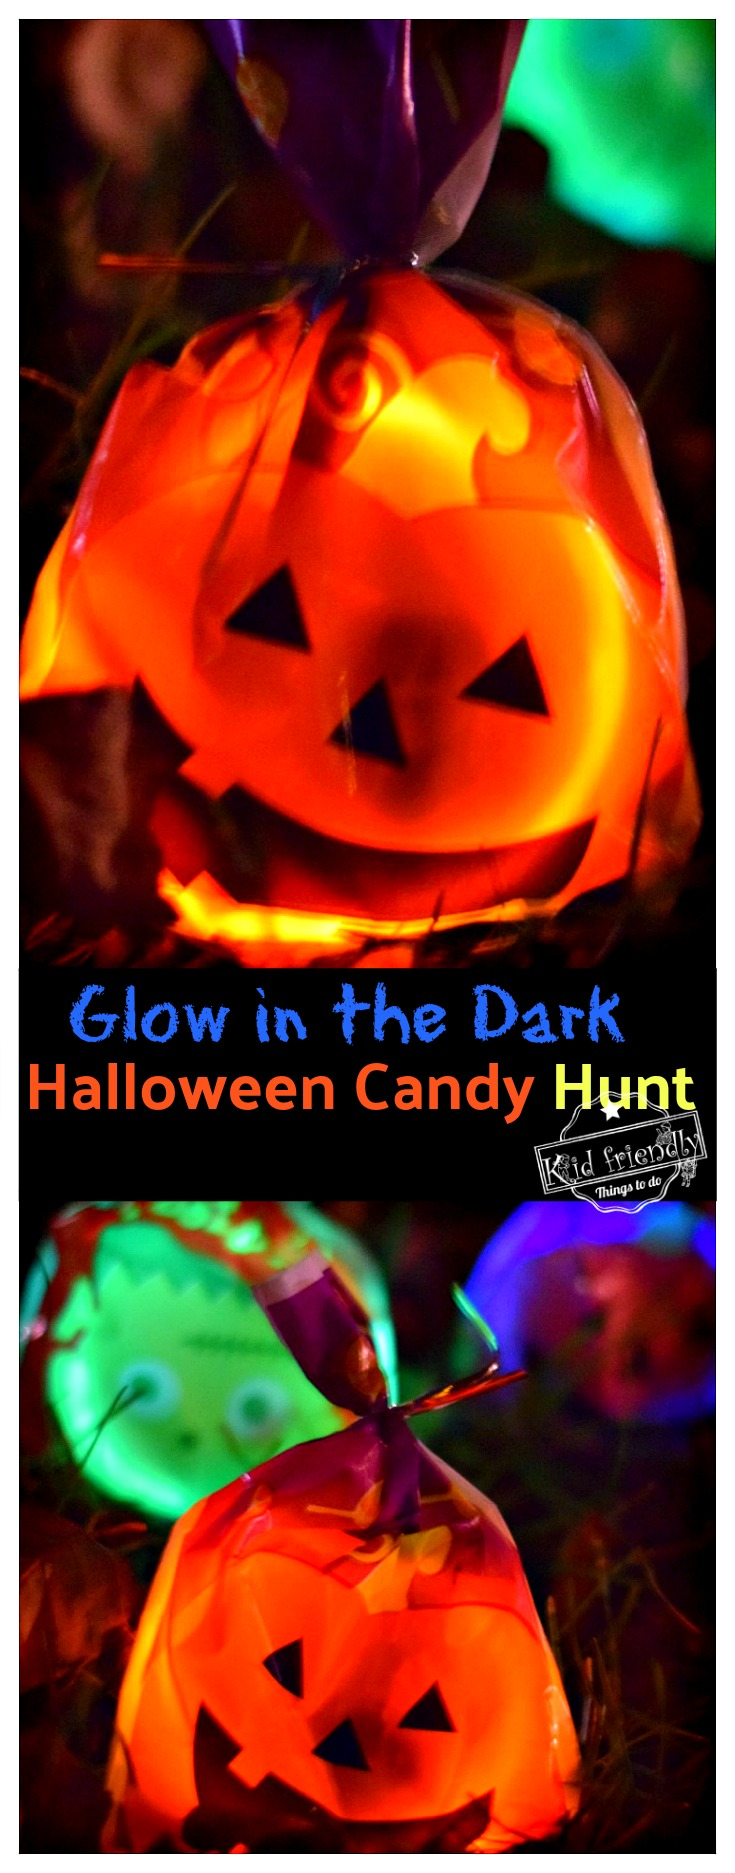 A Glow in the Dark Halloween Candy Hunt Idea for Kids! - Such a fun party idea or just a fun family idea - Light up the night and hunt for candy! Fun DIY game idea! www.kidfriendlythingstodo.com